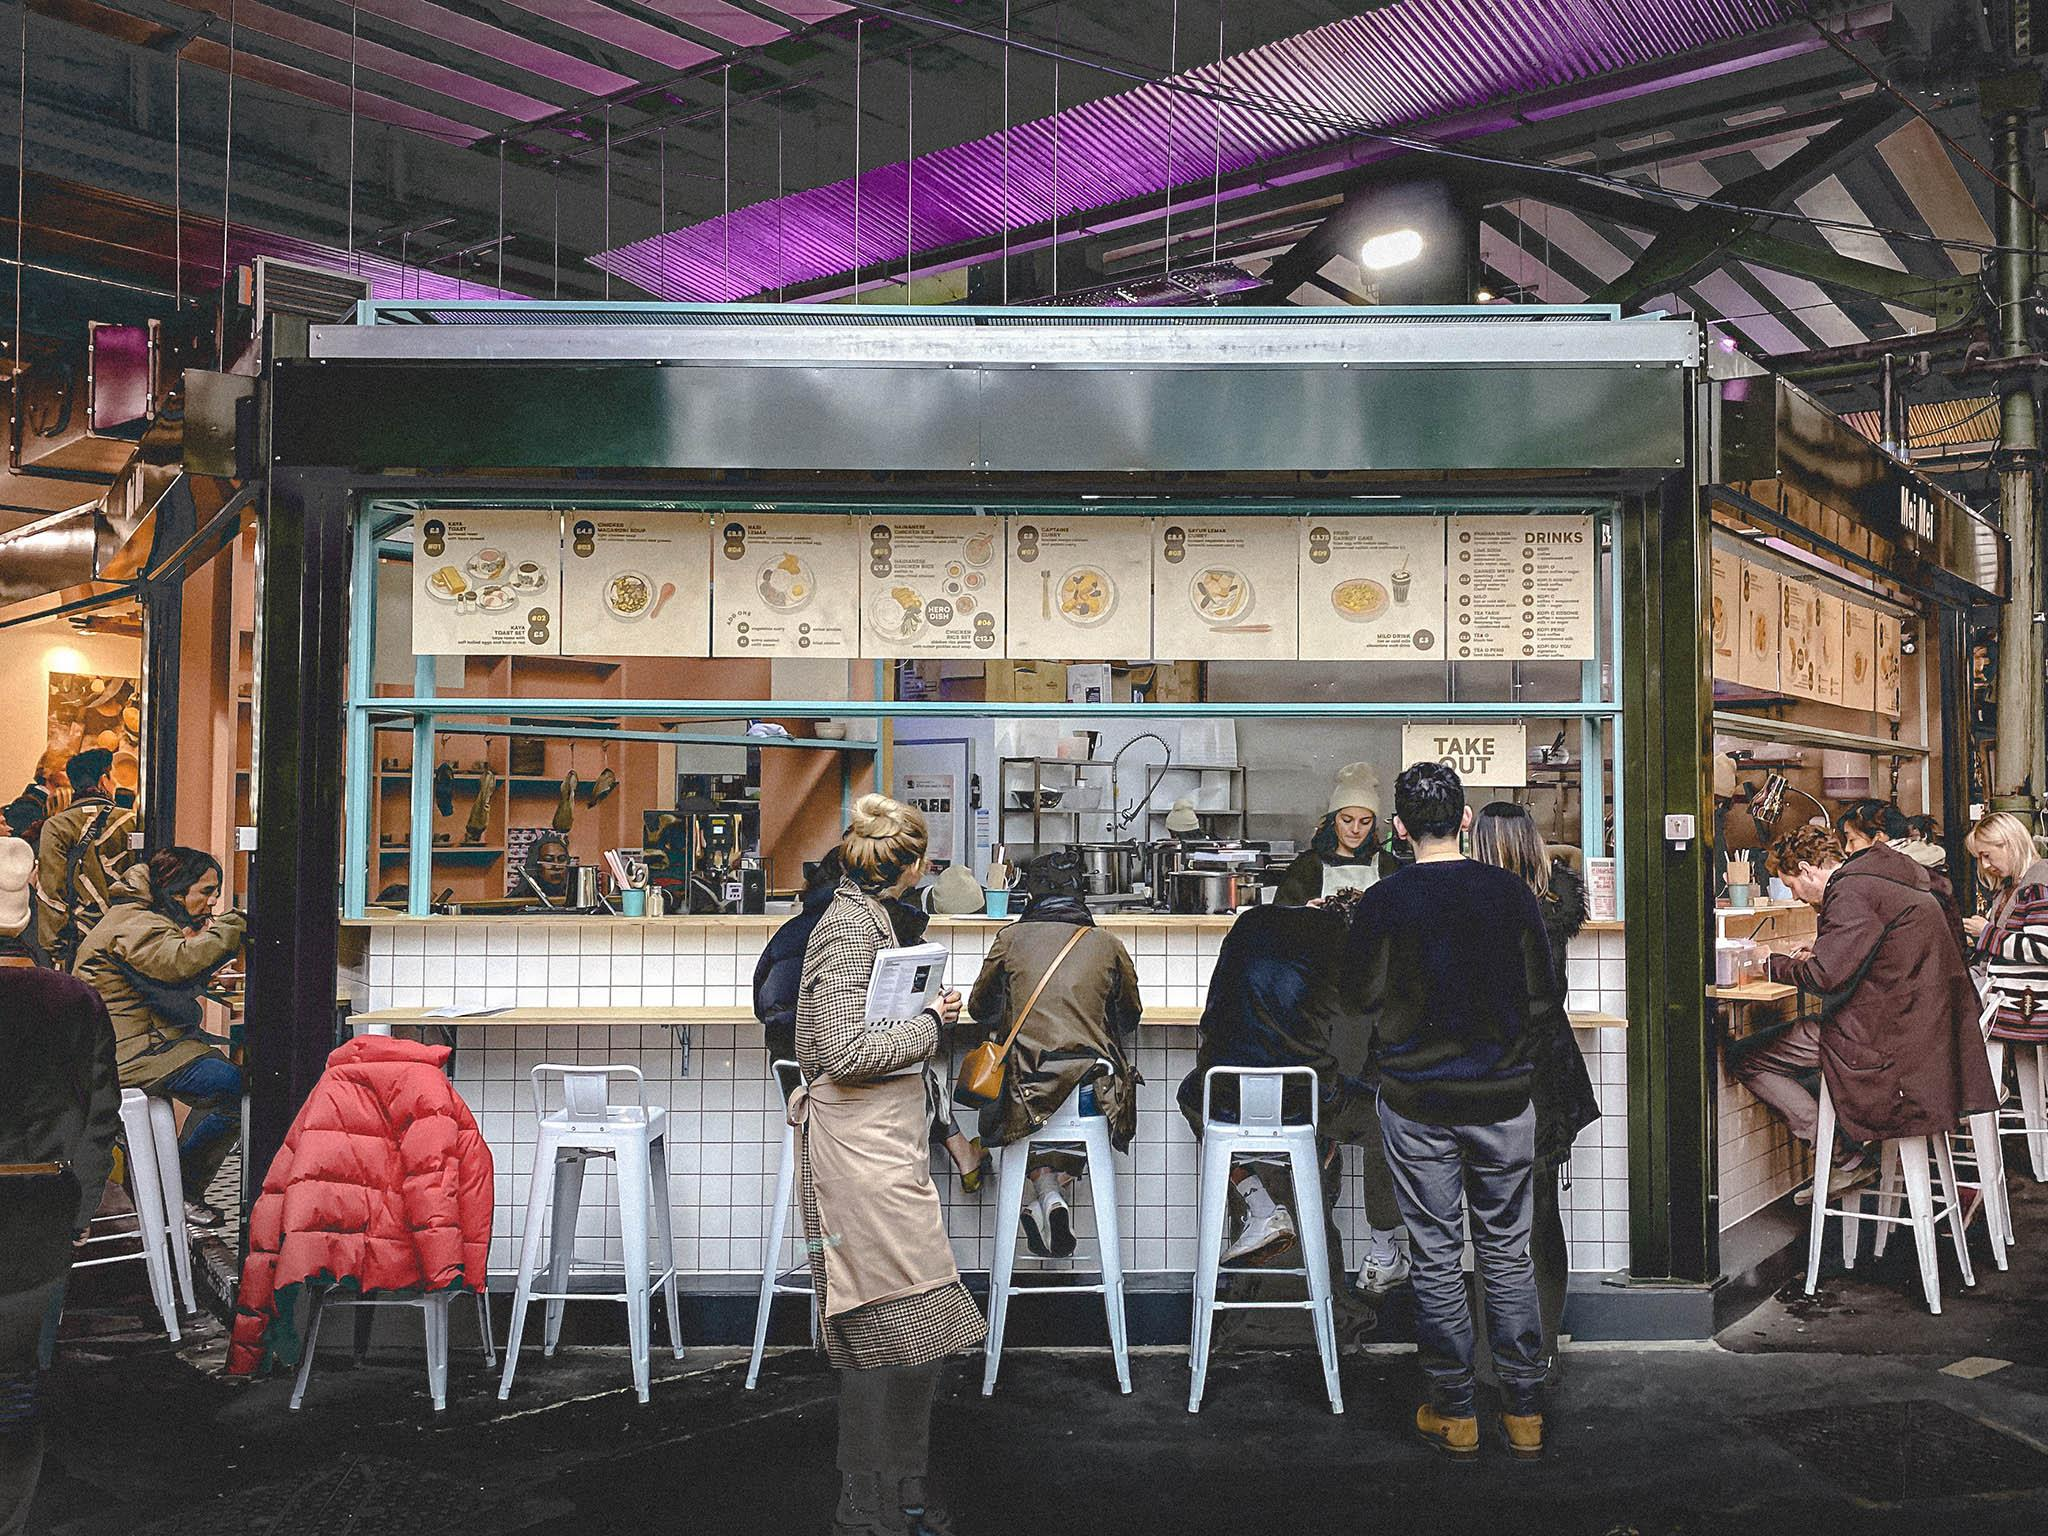 Mei Mei review, Borough Market: Don't judge a dish by its looks